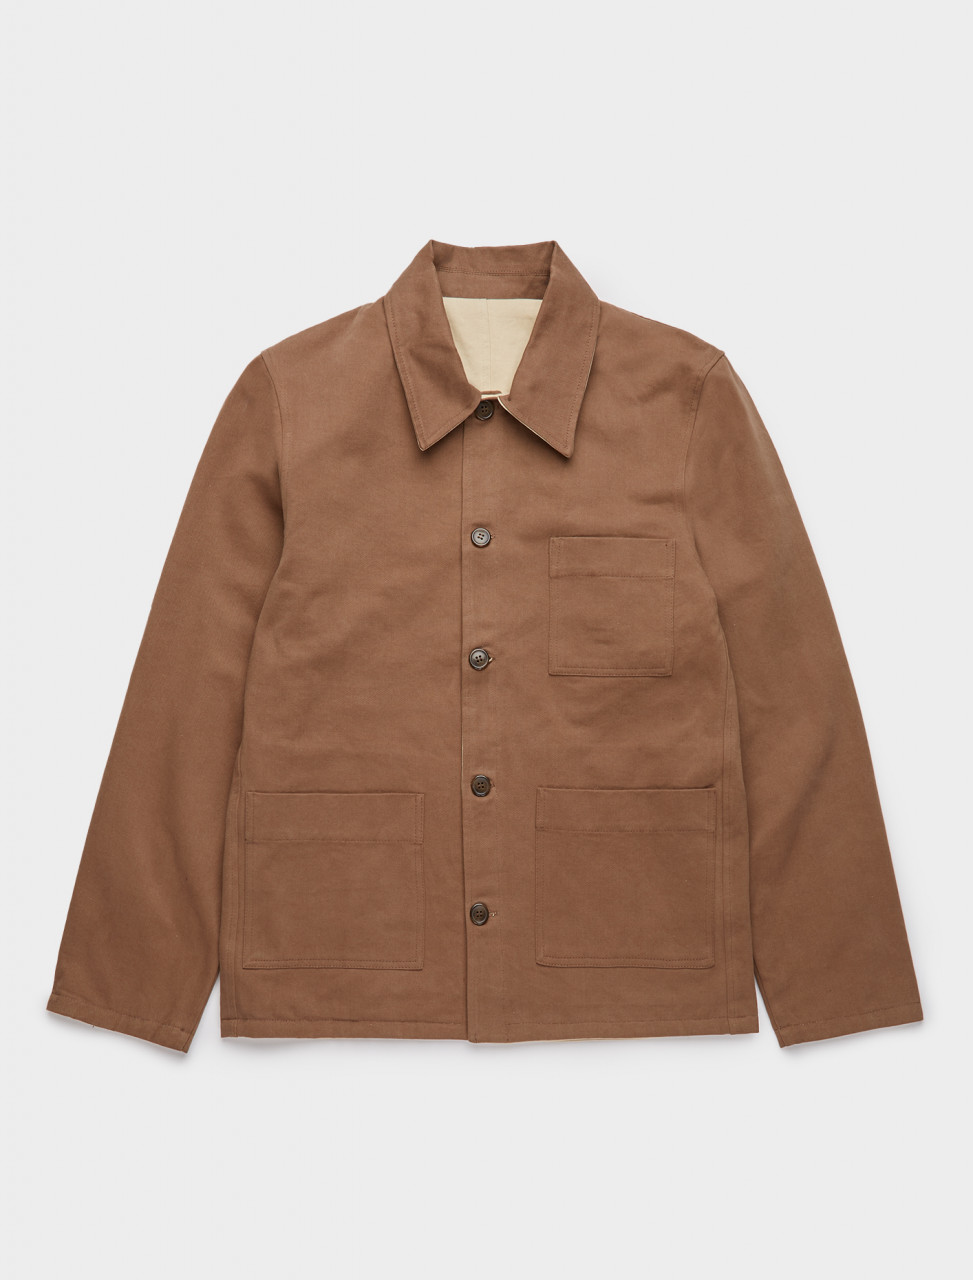 344-123456-001 ANOTHER ASPECT ANOTHER OVERSHIRT 1.0 BROWN BEIGE